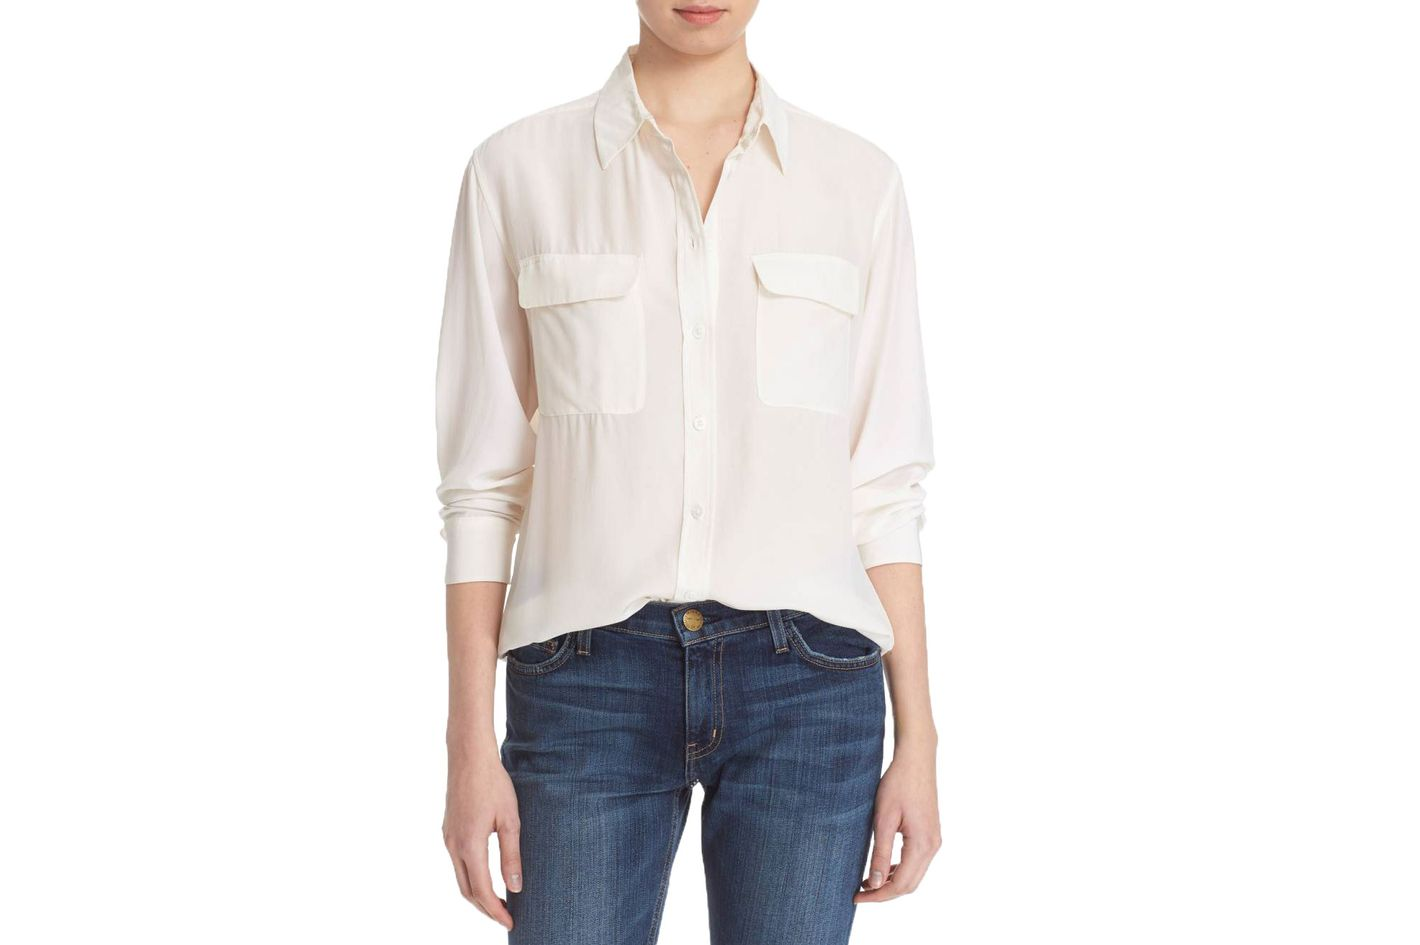 5b1ed73e92 Best White Button-down Shirts for Women